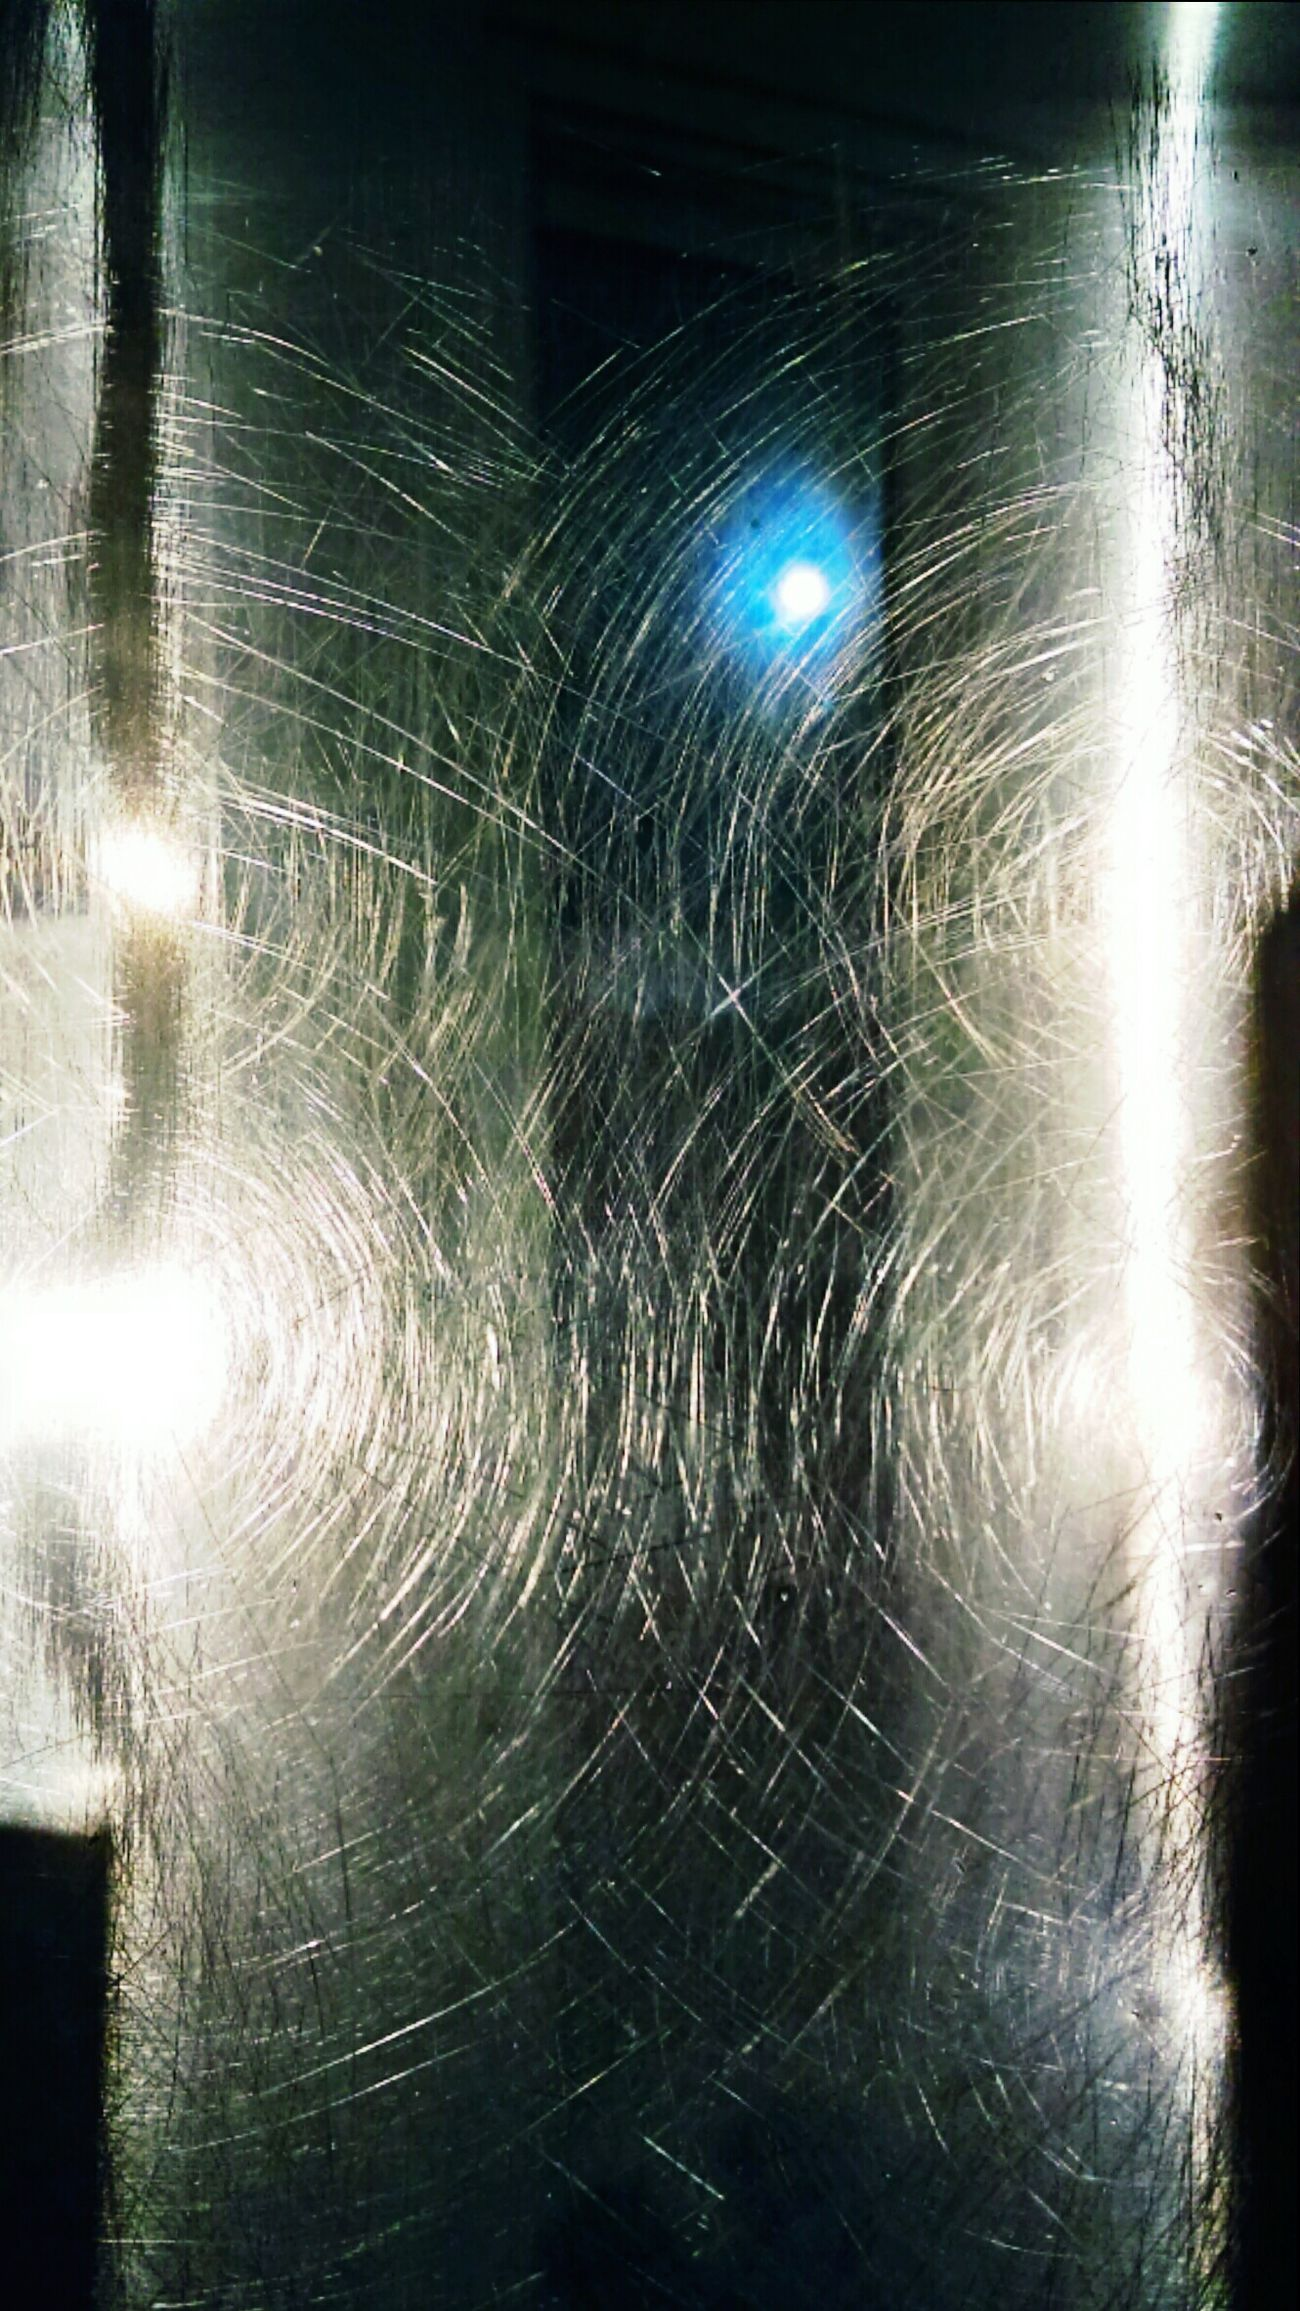 Abstract Abstract Art Scifiesque Abstract Photography Window Channels Moon Ethereal